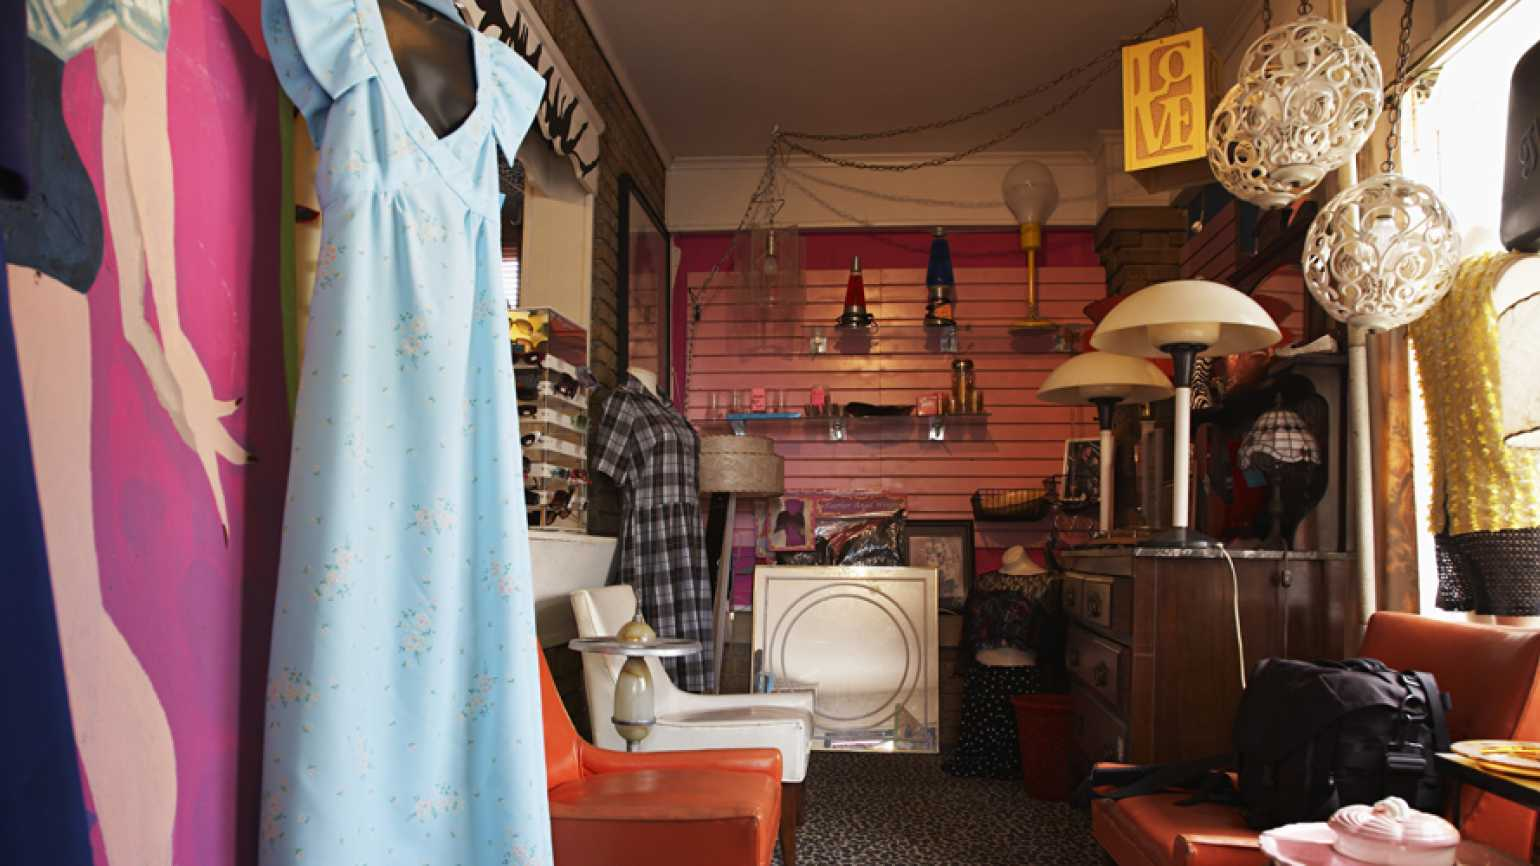 An image of clothes, furniture at a thrift store, save money on holiday shopping | Guideposts